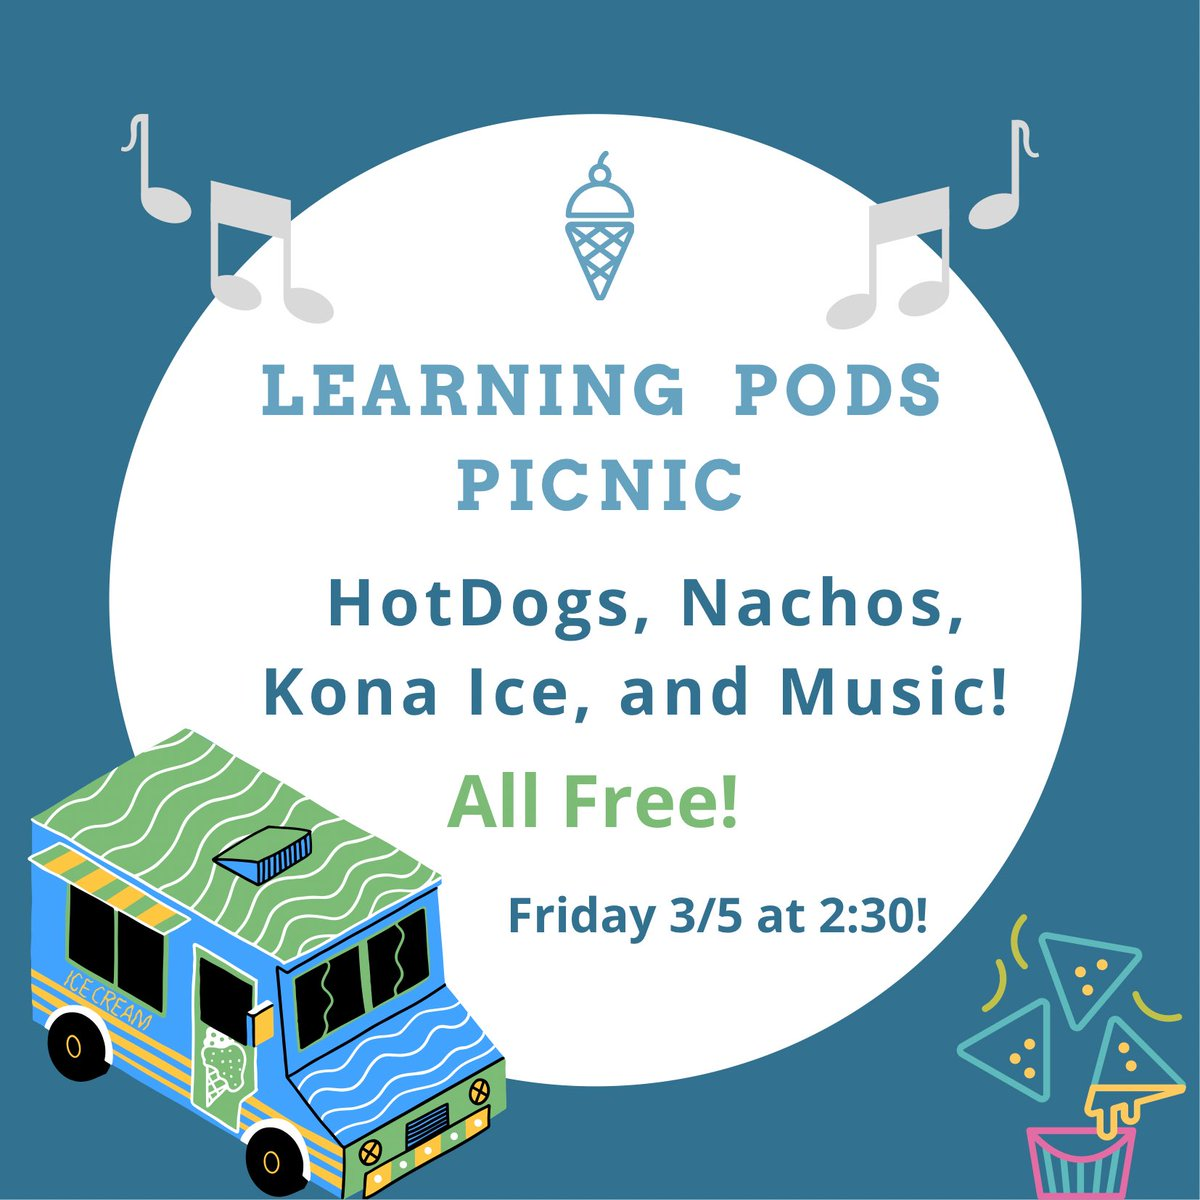 Learning pod students there will be a picnic on Friday 3/5!  On campus enjoy some free food and music 🎶! #patriots🤍❤️💙 https://t.co/XTOKbMwOBJ